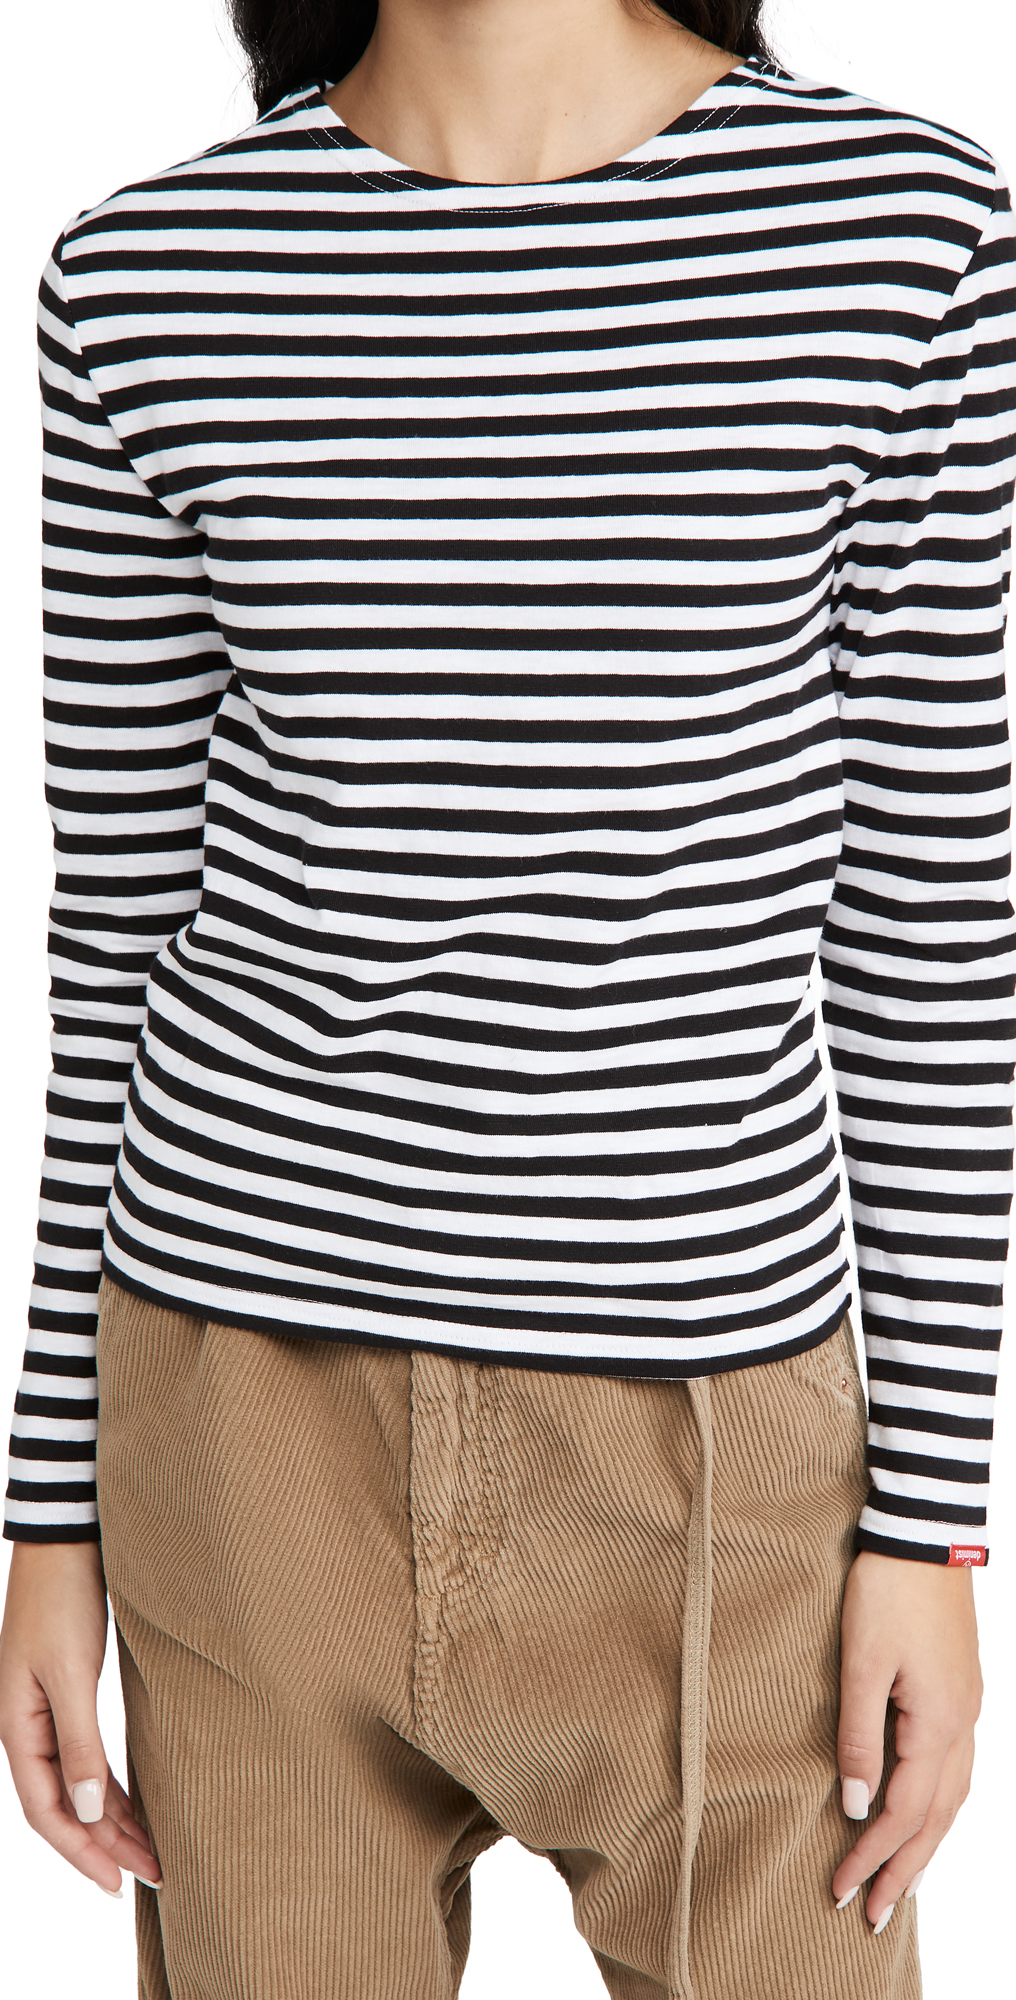 Denimist Striped Tee